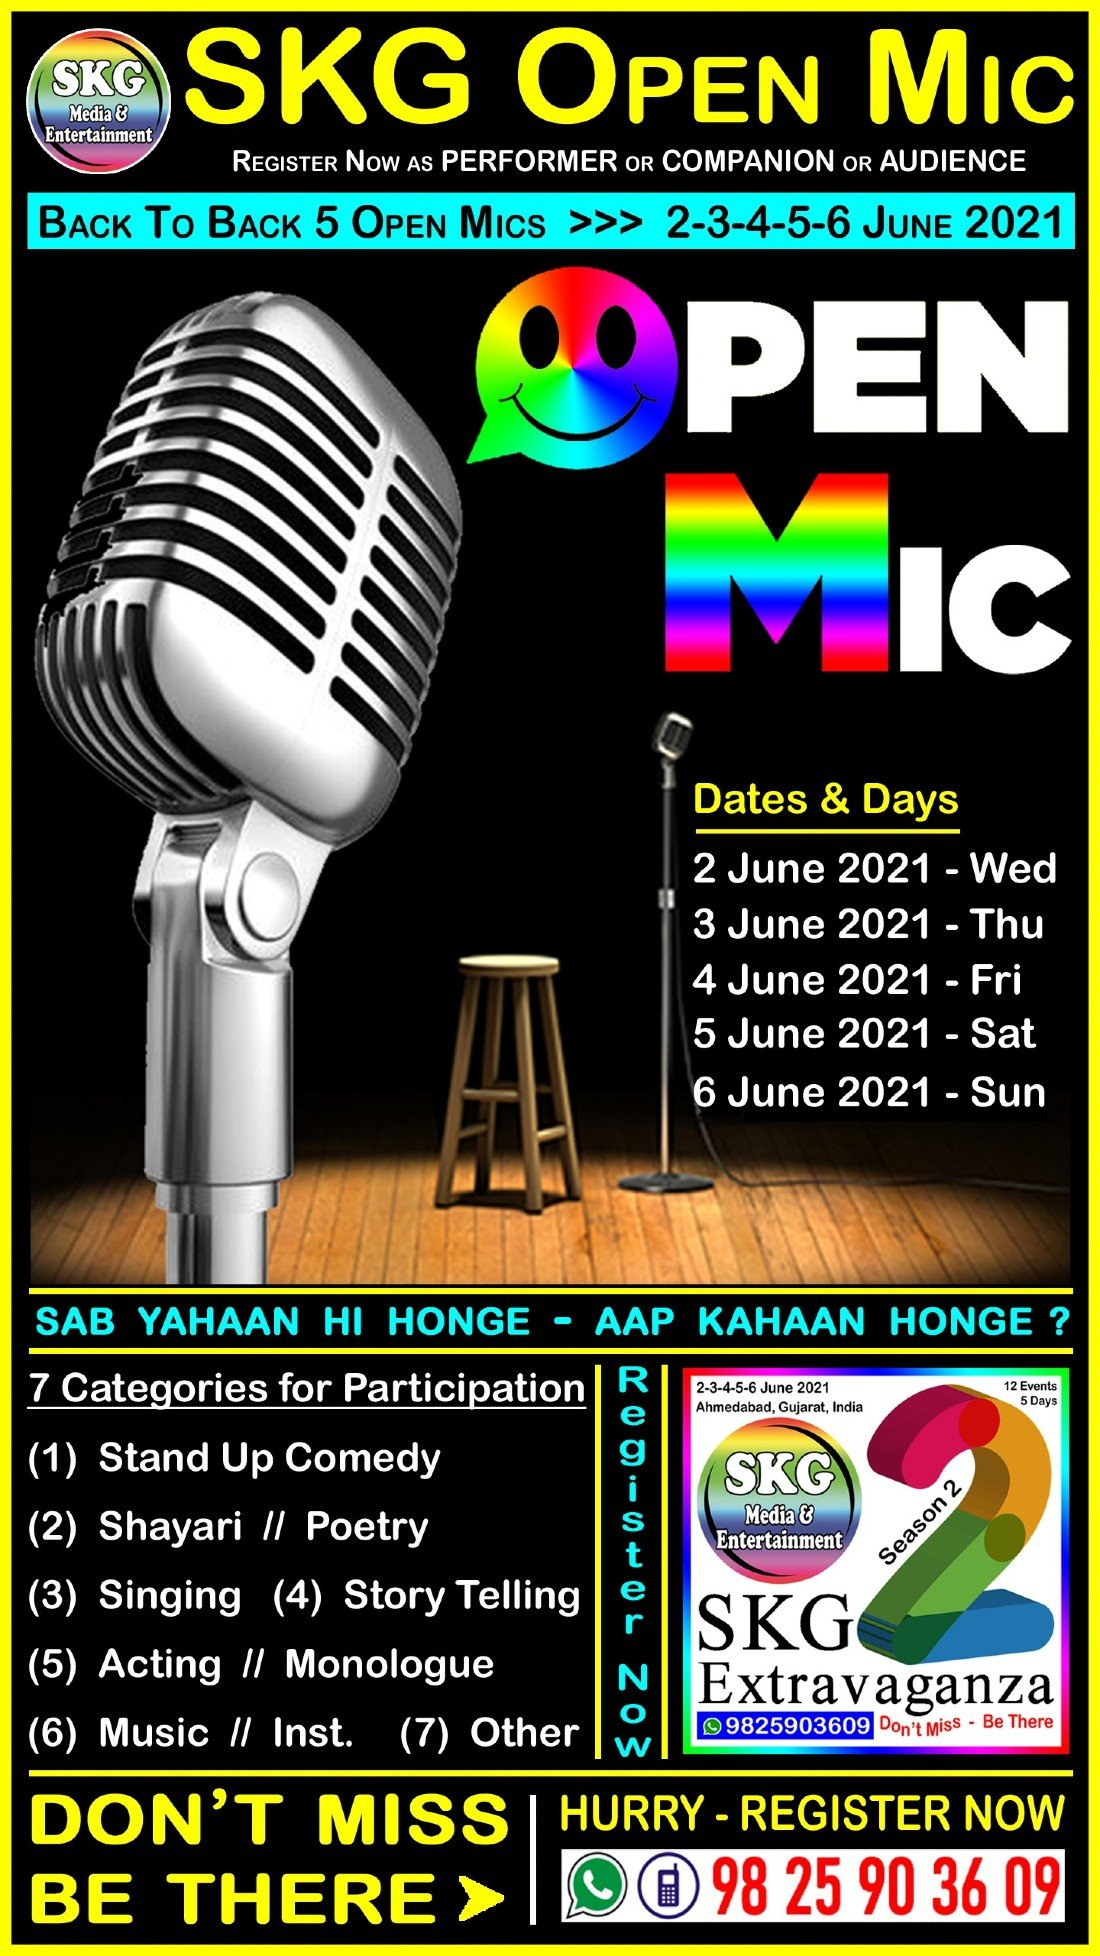 SKG Open Mic - Back to Back 5 Open Mics (( Event No 4 of 12 - SKG Extravaganza Season 2 )), 2 June | AllEvents.in